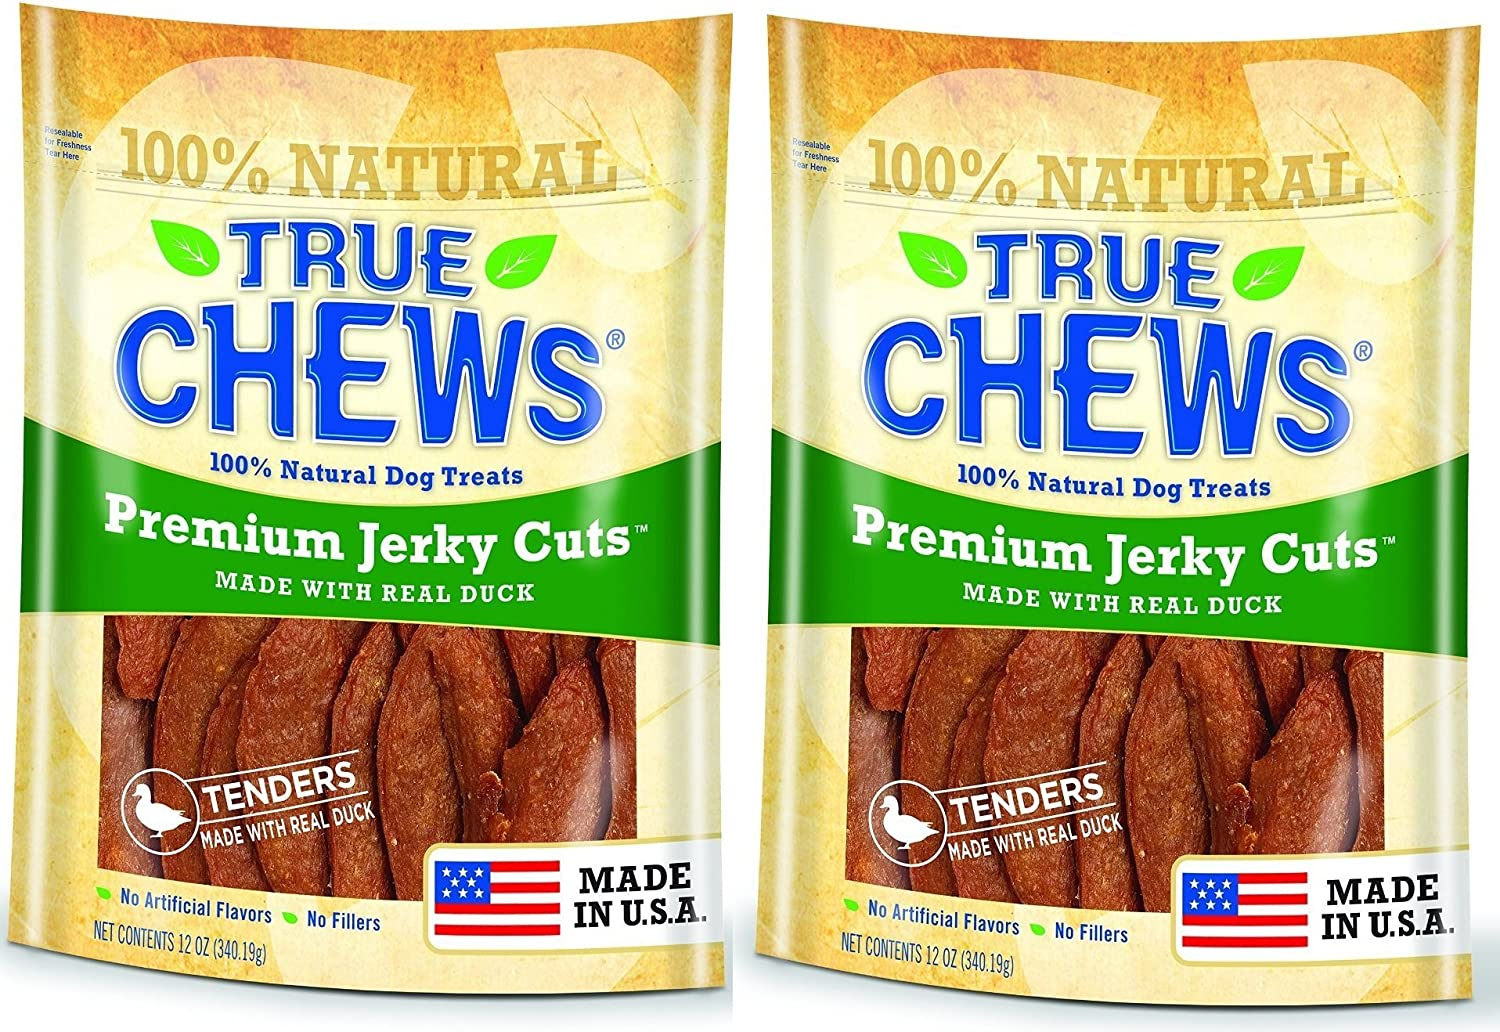 NATURAL HEALTHY PREMIUM DUCK JERKY DOG TREAT CHEWS 12 OUNCES MADE IN USA 2 BAGS